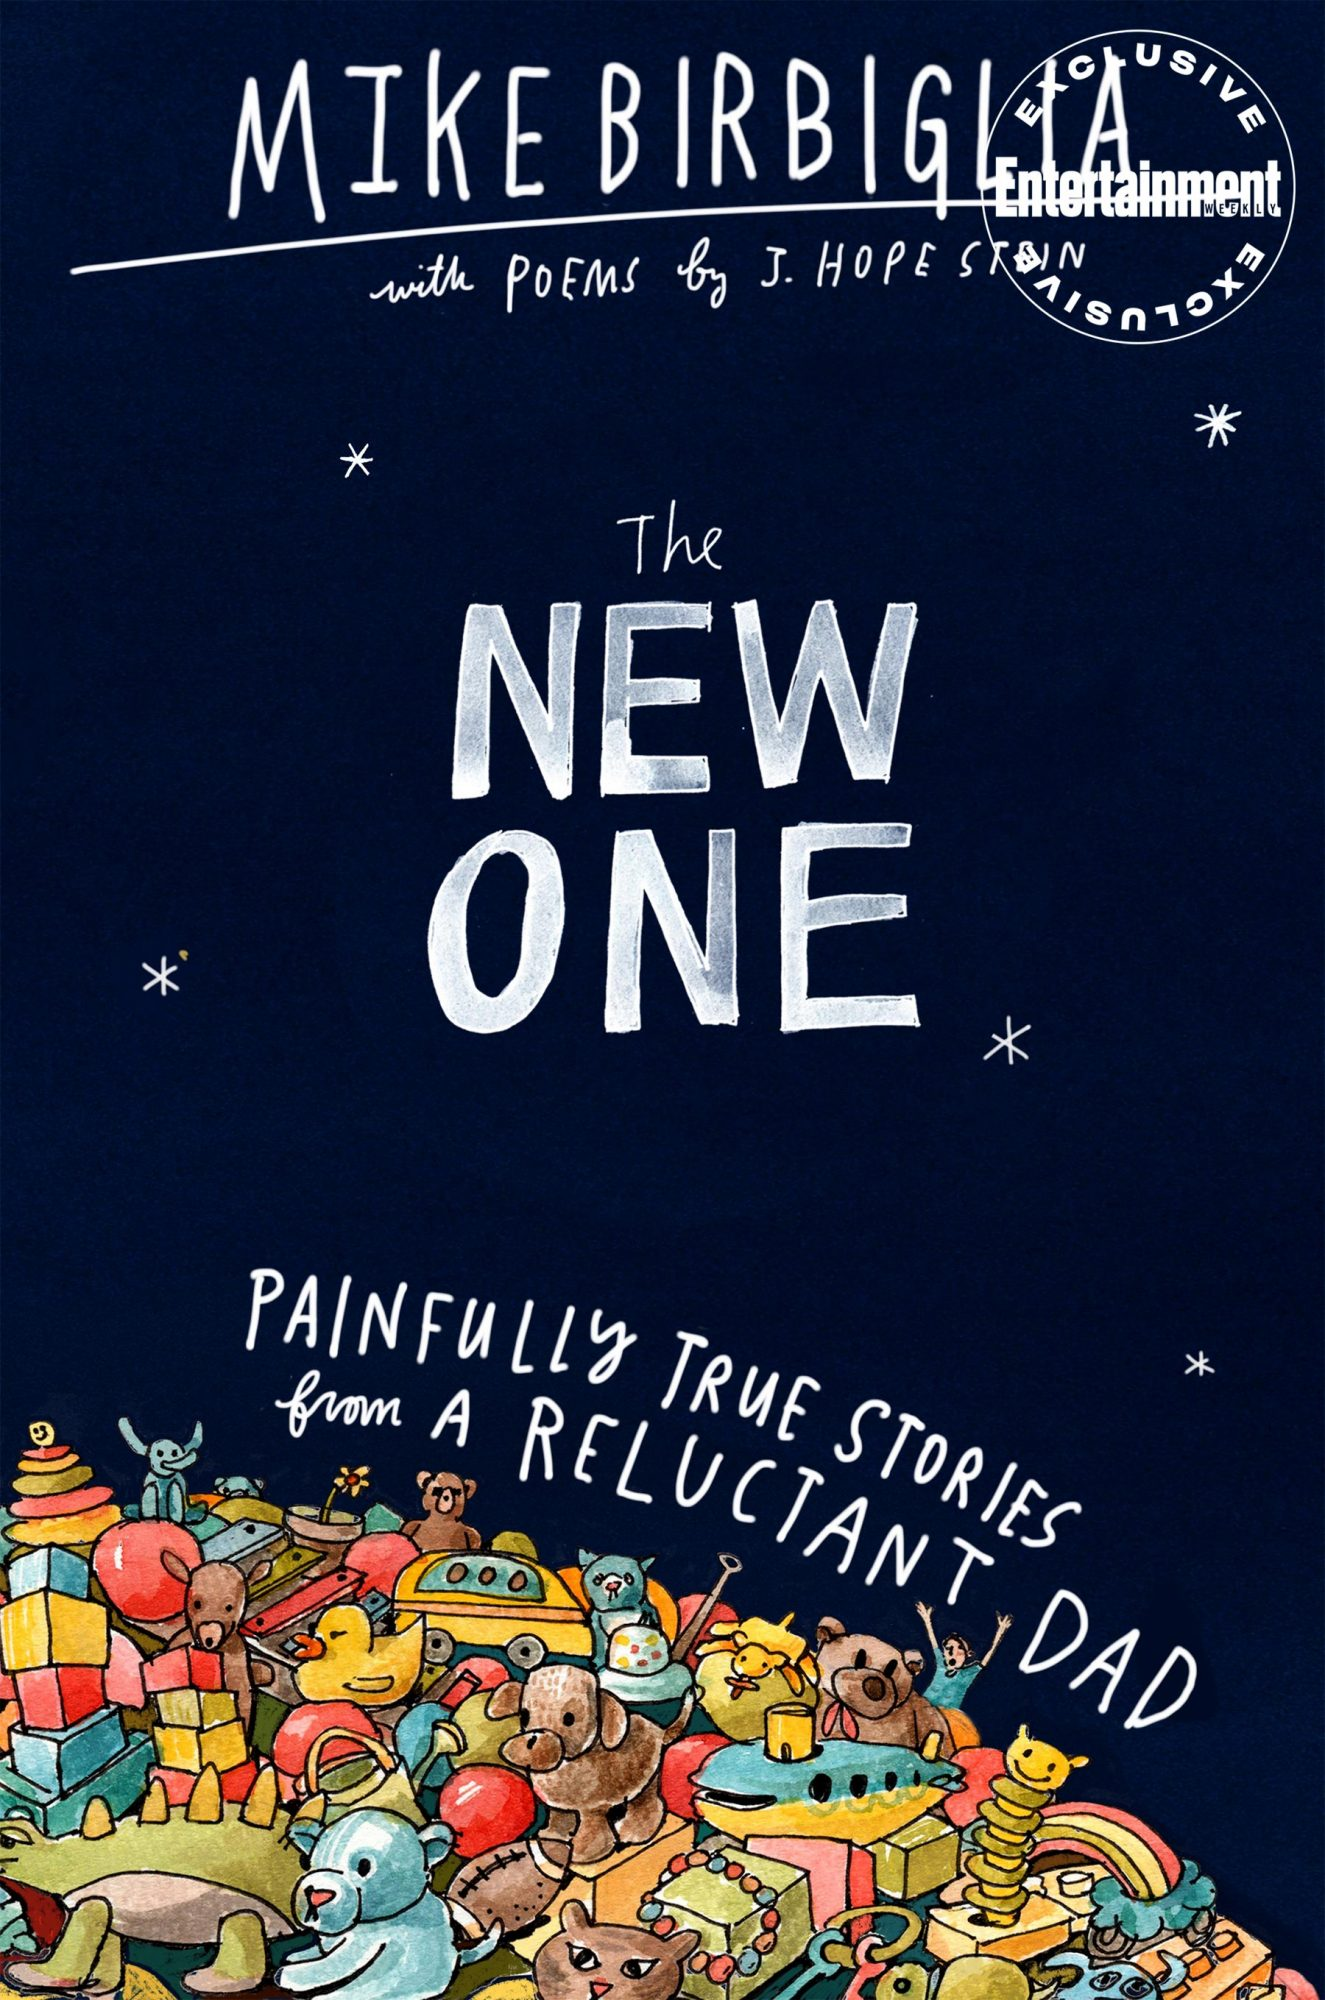 The New One by Mike Birbiglia CR: Grand Central